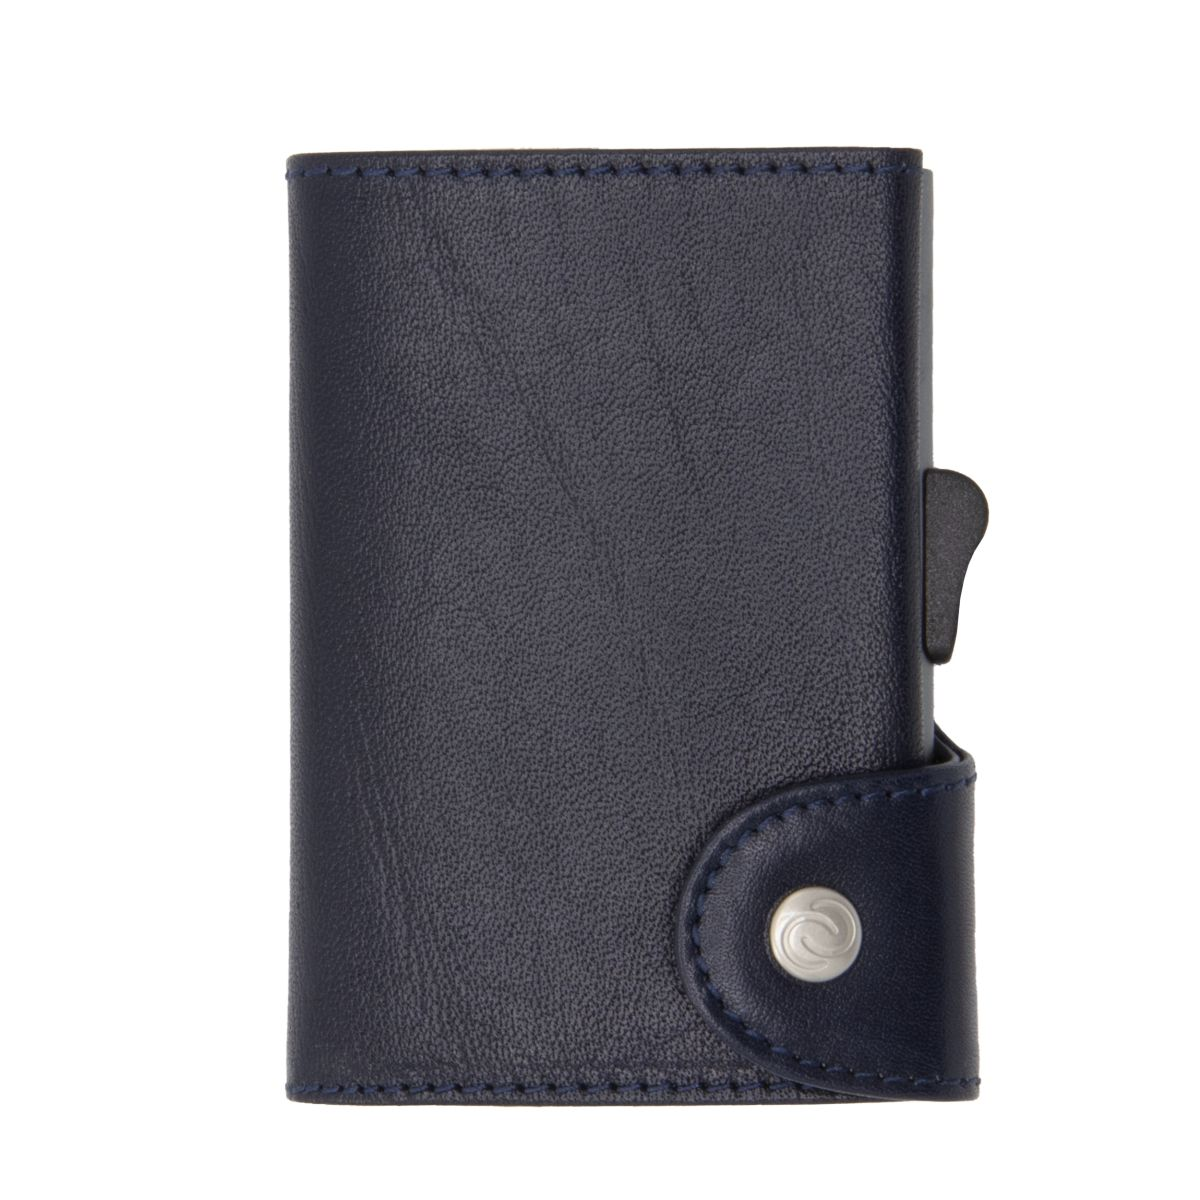 C-Secure XL Aluminum Wallet with Vegetable Genuine Leather and Coins Pocket - Blue Montana